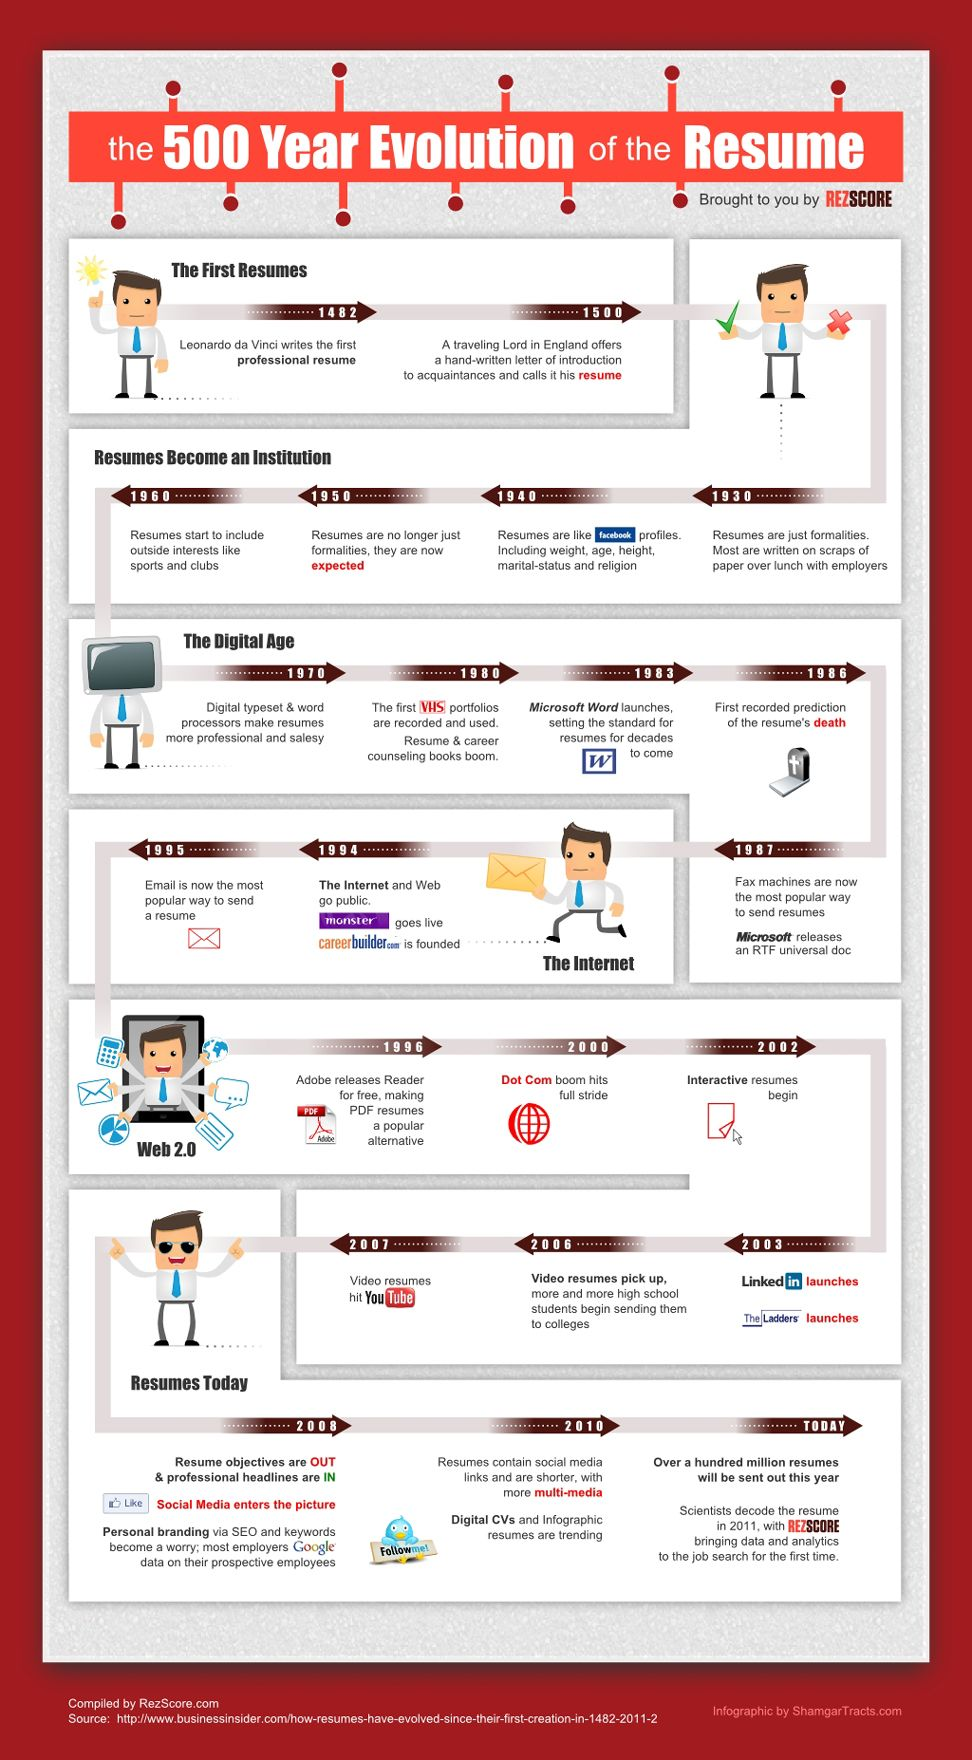 the modern history of the resume infographic infographic the 500 year evolution of the resume yes for 500 years now people